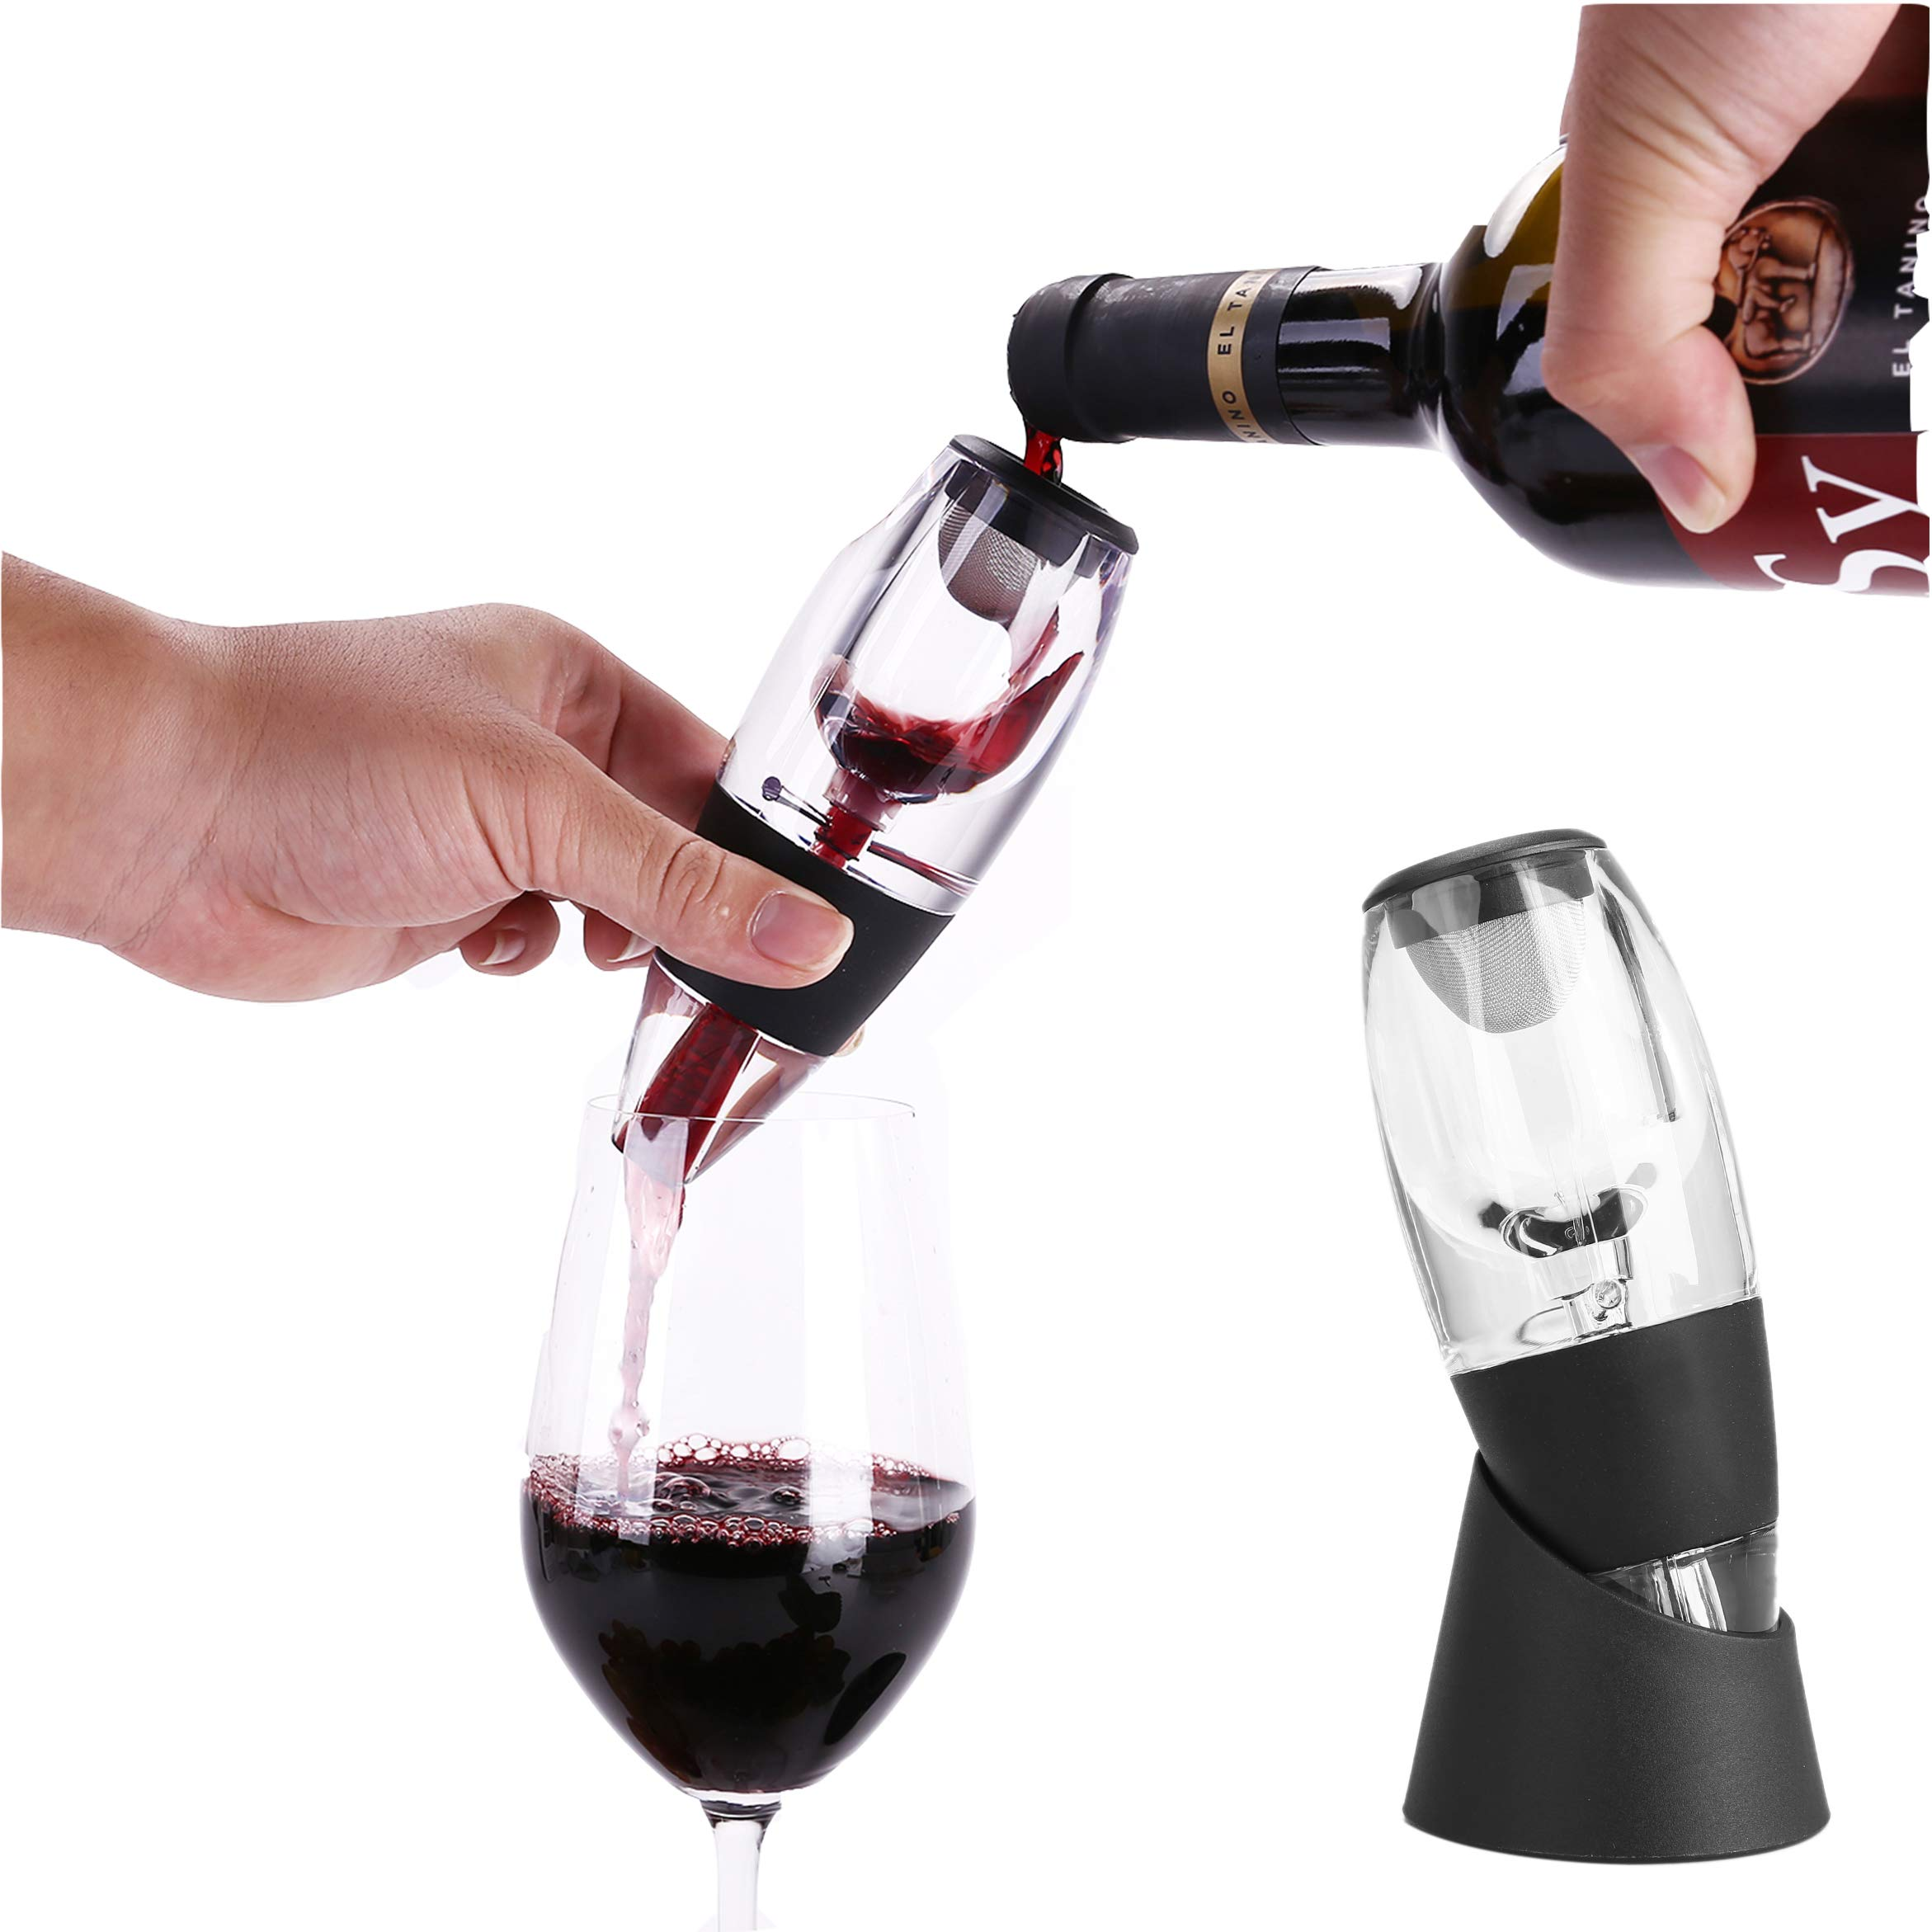 Wine Aerator Decanter Portable Fast Decanter Device - Latest Aerator Technology, Stylish and Practical